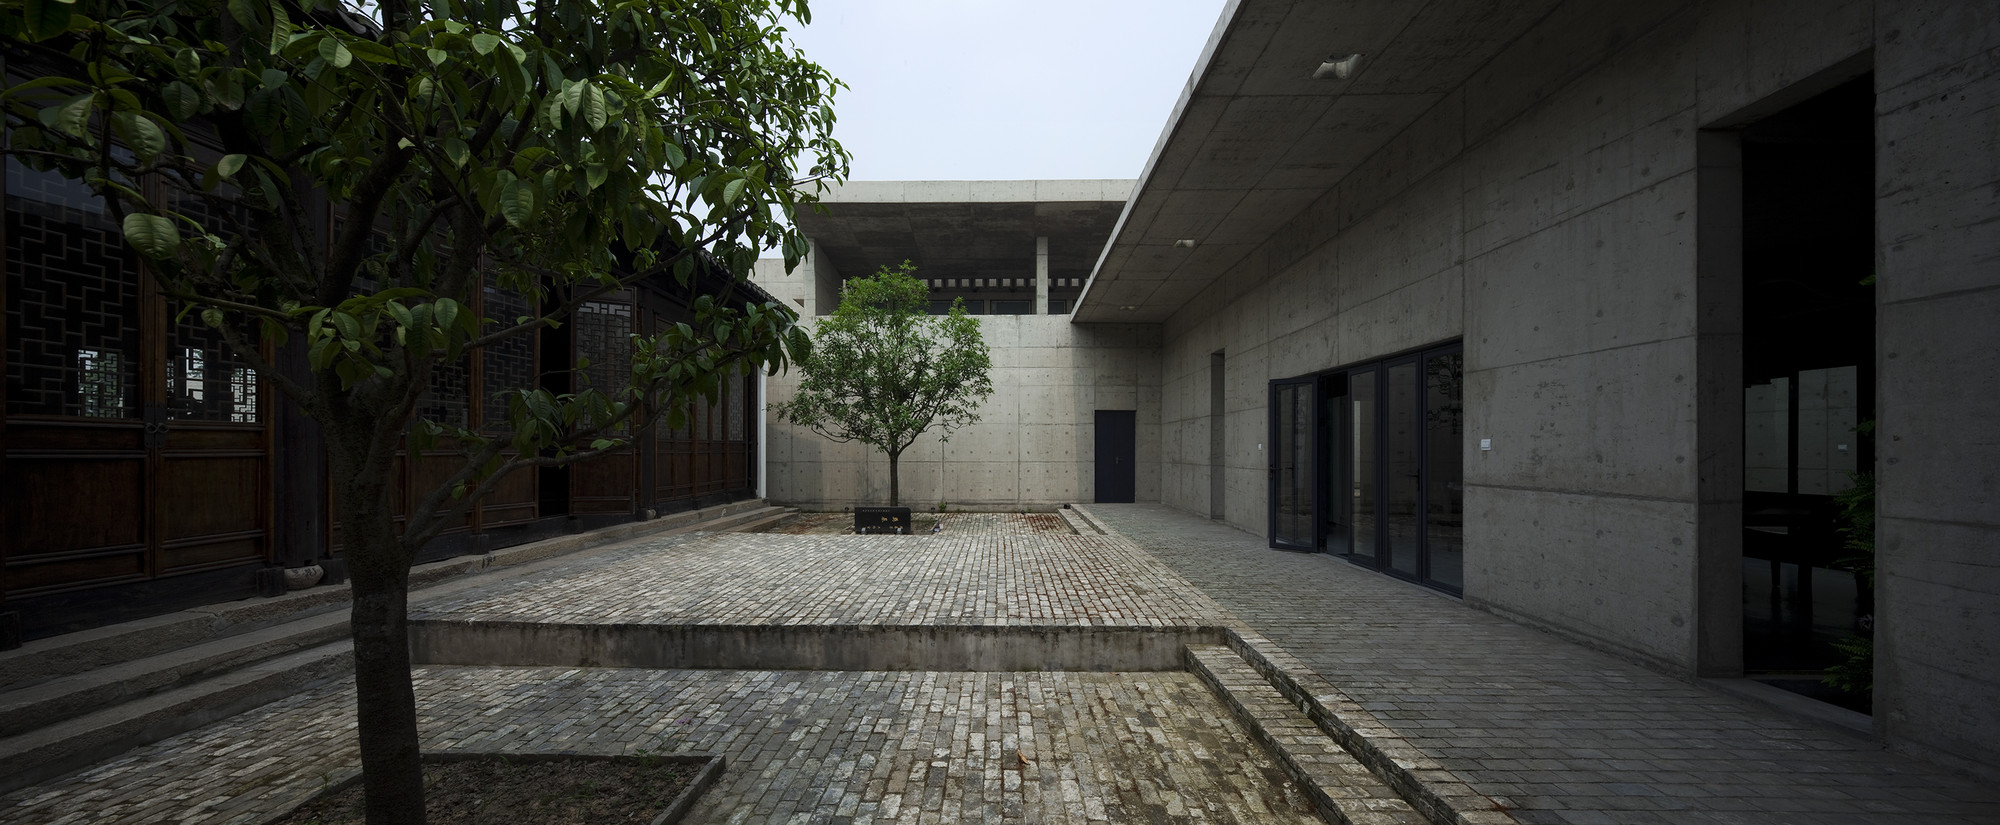 Zhou Chunya Art Studio / TM Studio, Courtesy of TM Studio